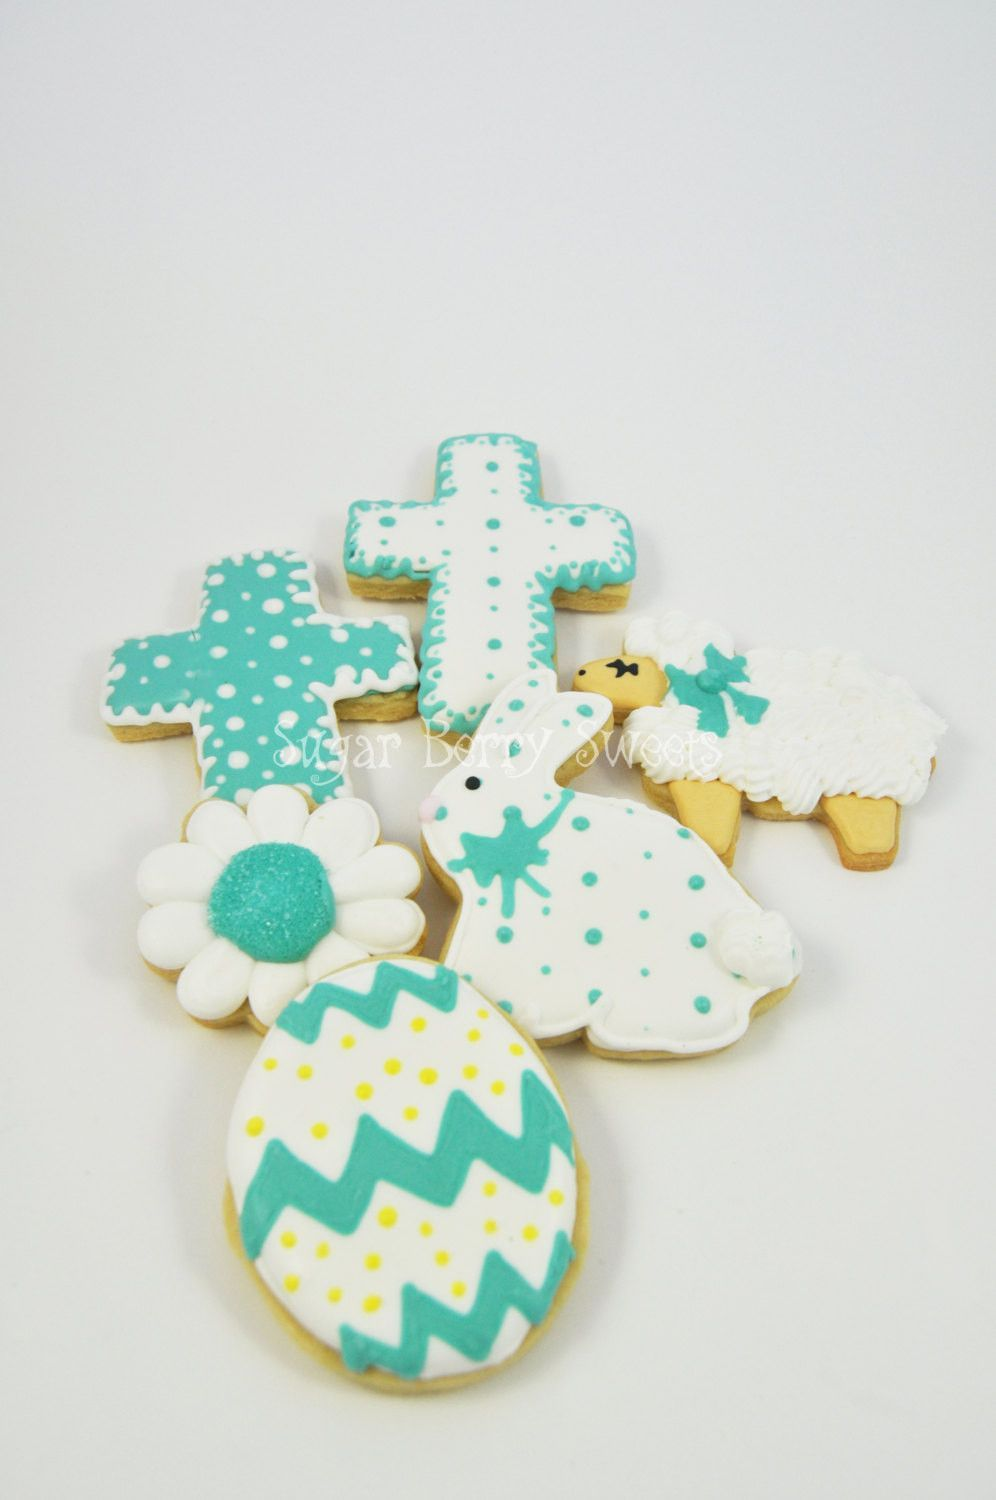 Sugar Cookie Bunnies and Lambs Sugar Cookie Bunnies and Lambs new images